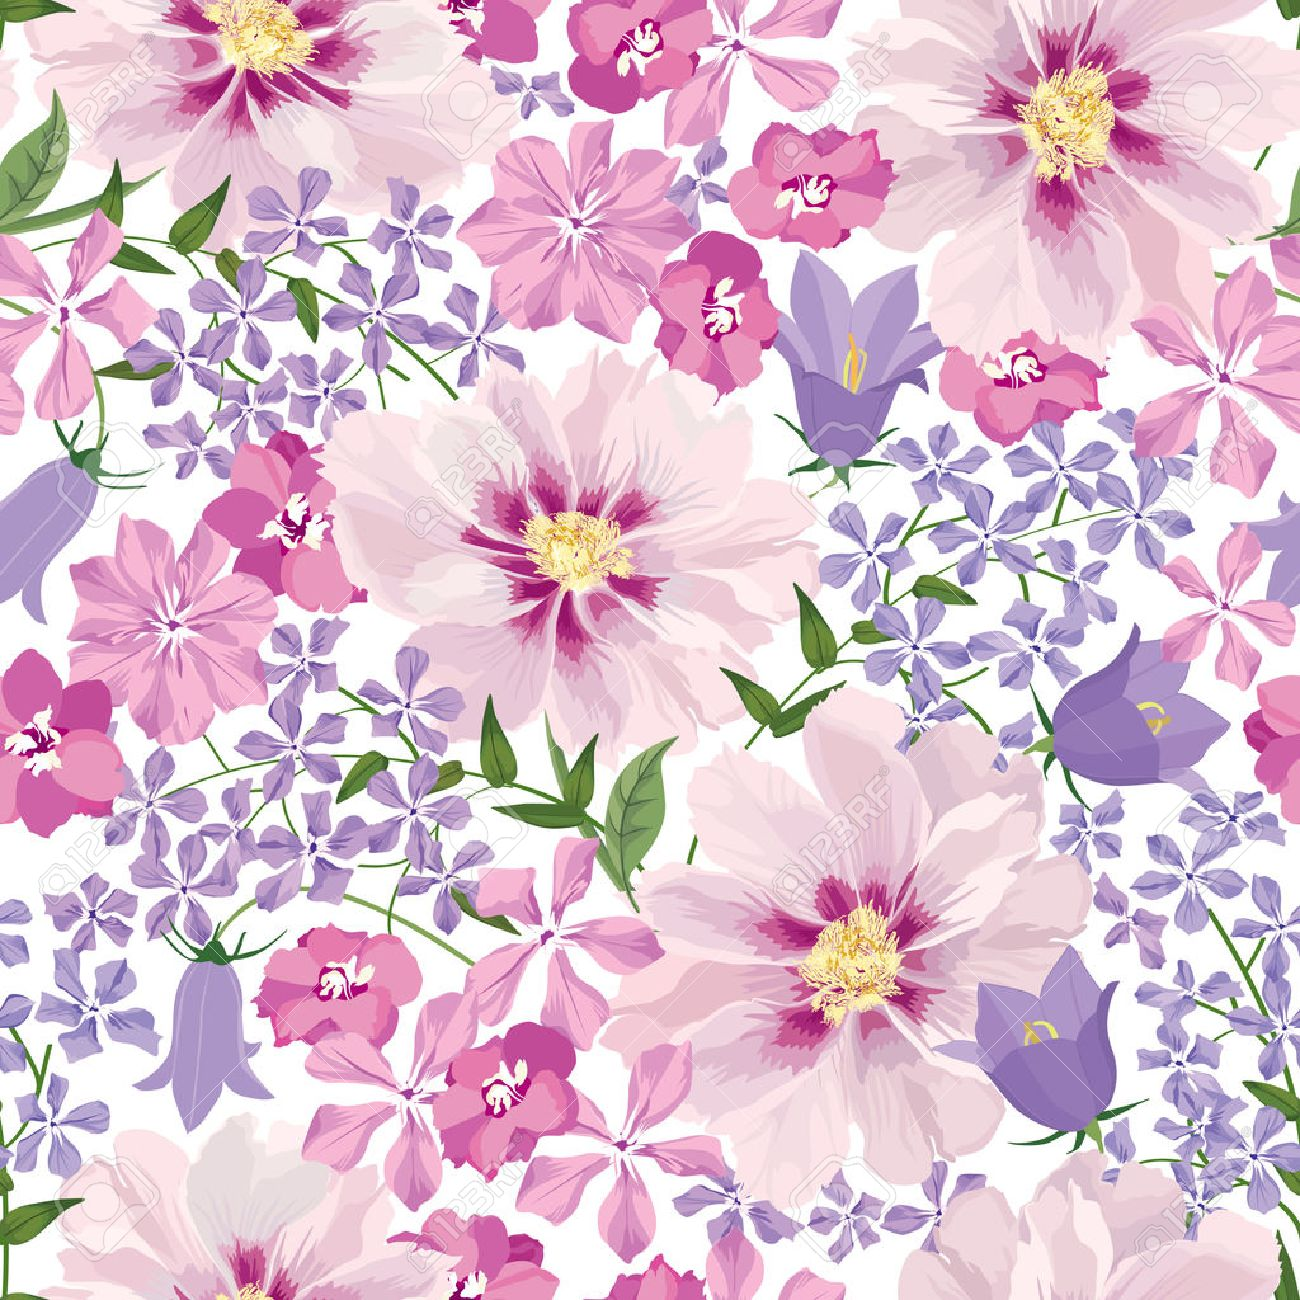 Floral seamless pattern. Flower background. Floral seamless texture with flowers. Stock Vector - 46073545